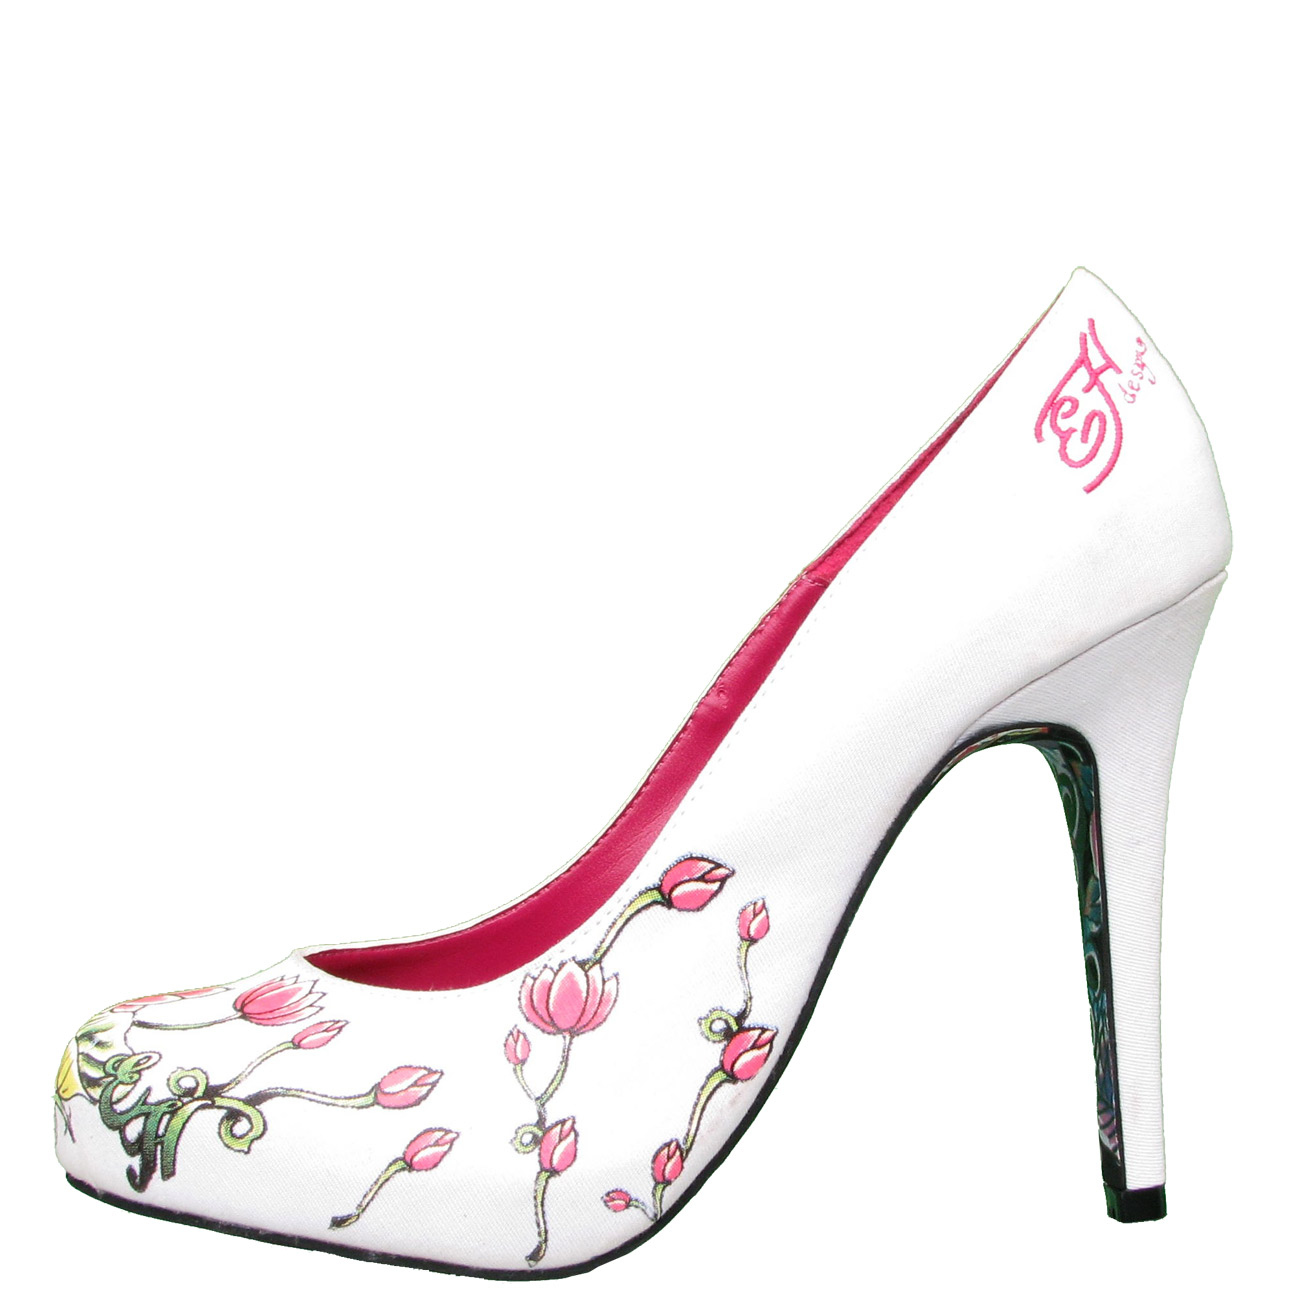 Ed Hardy Haute Floral Pump Shoe for Women - White